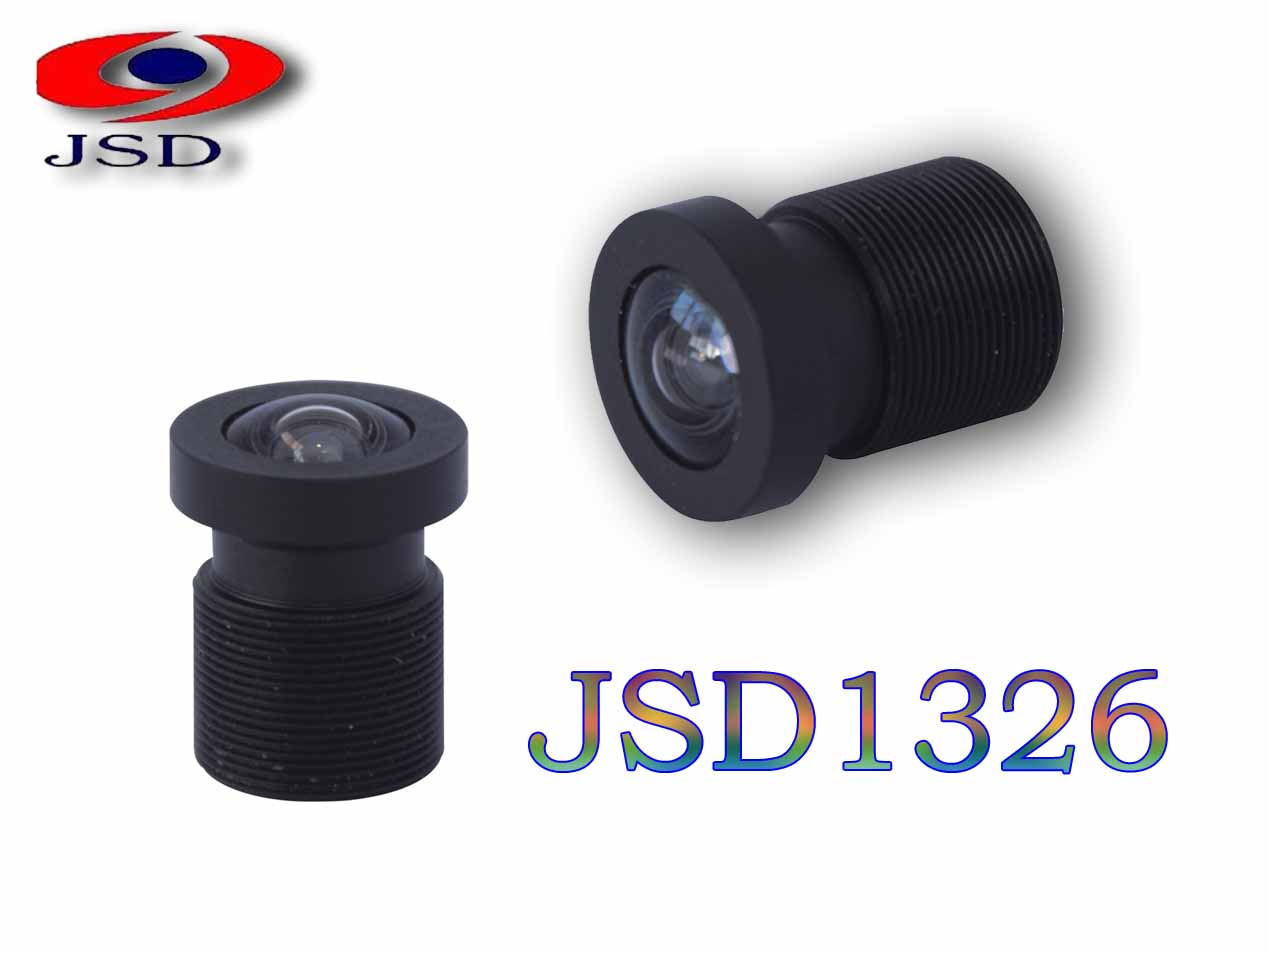 "JSD1326 1/2.3"" IMX117 16MPccd cctv camera lens for HD drone camera DAJ"